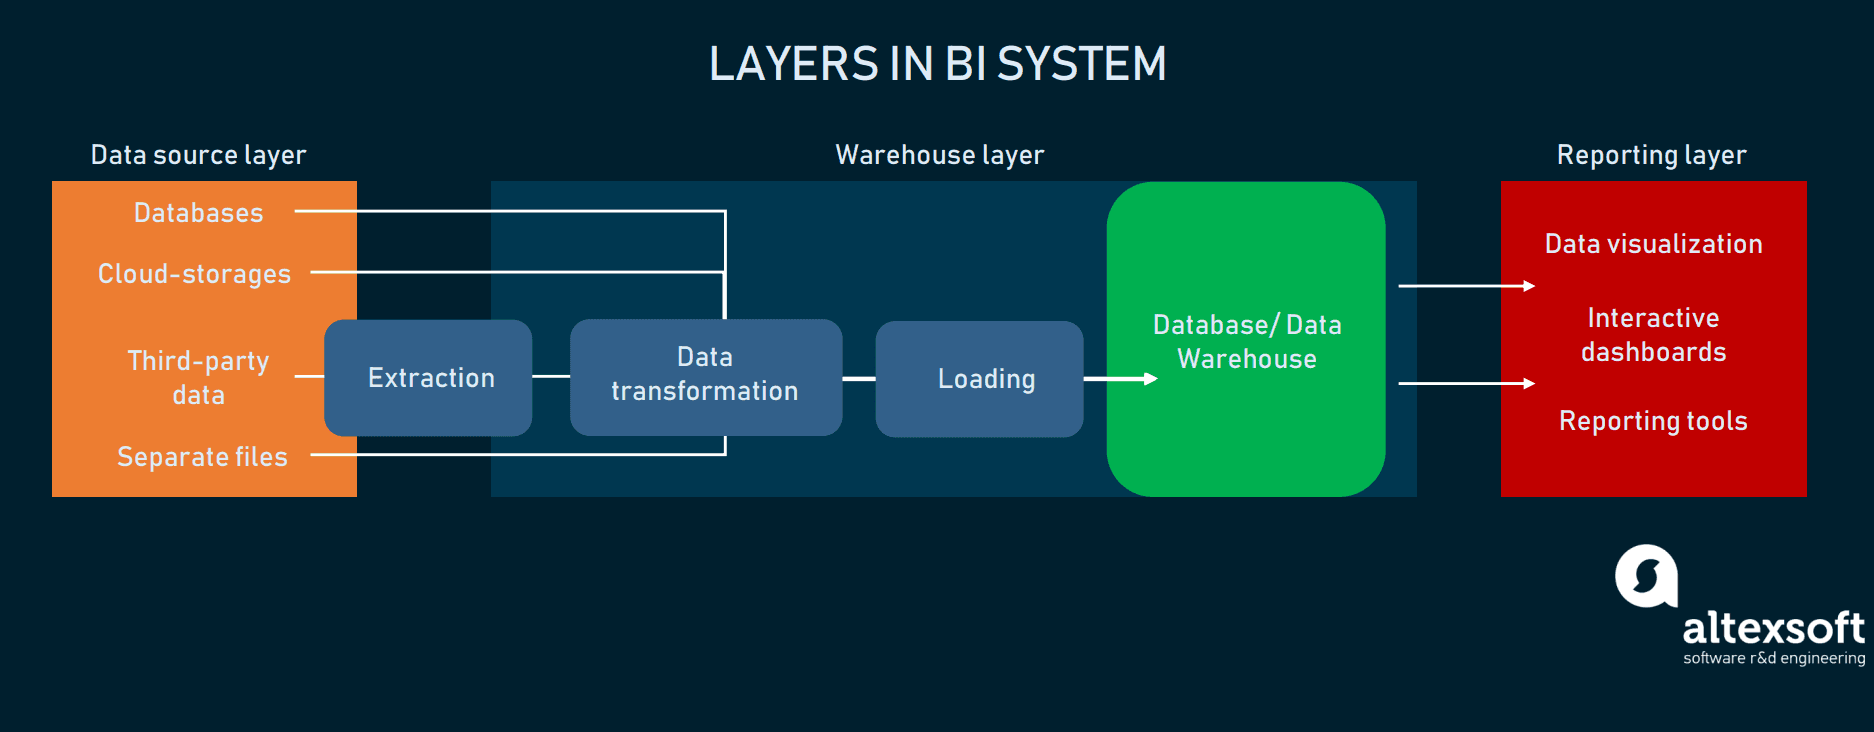 Layers in BI system